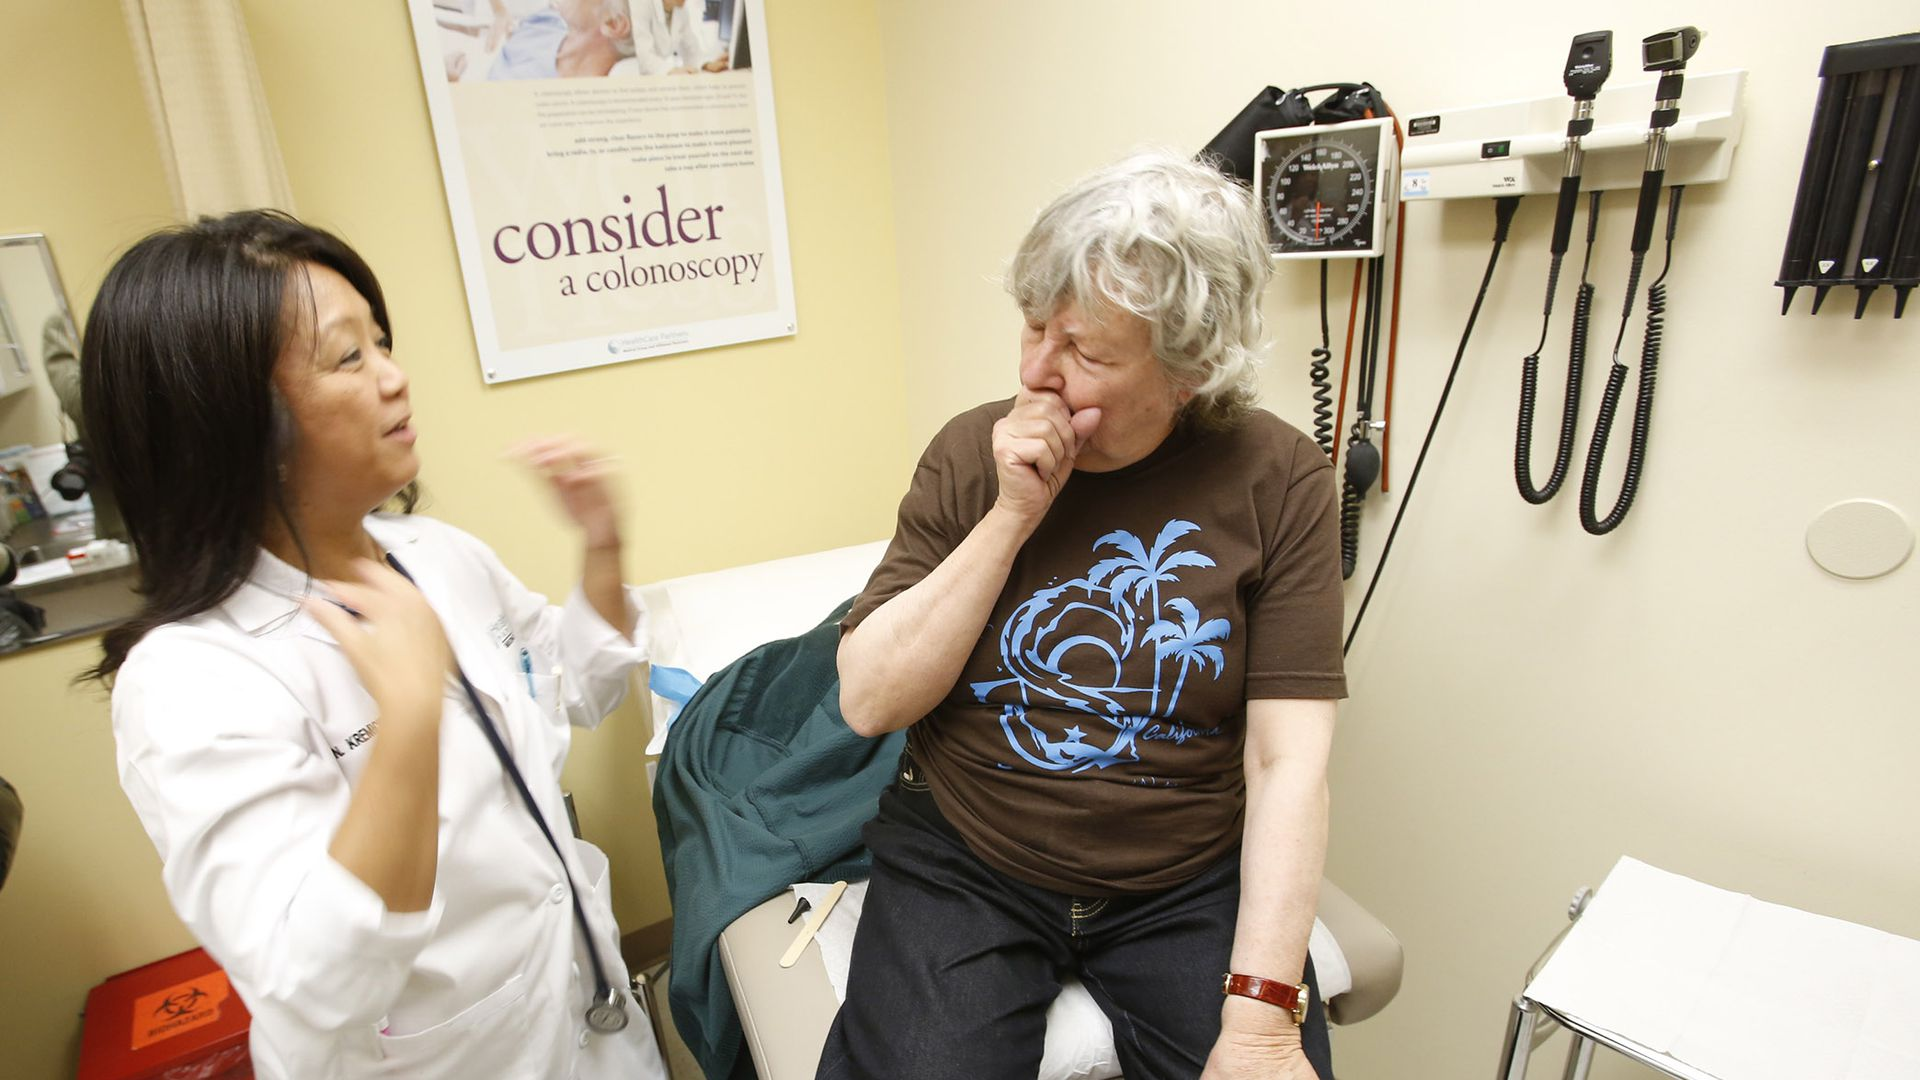 A patient sits on an exam table and coughs while a physician looks at her.